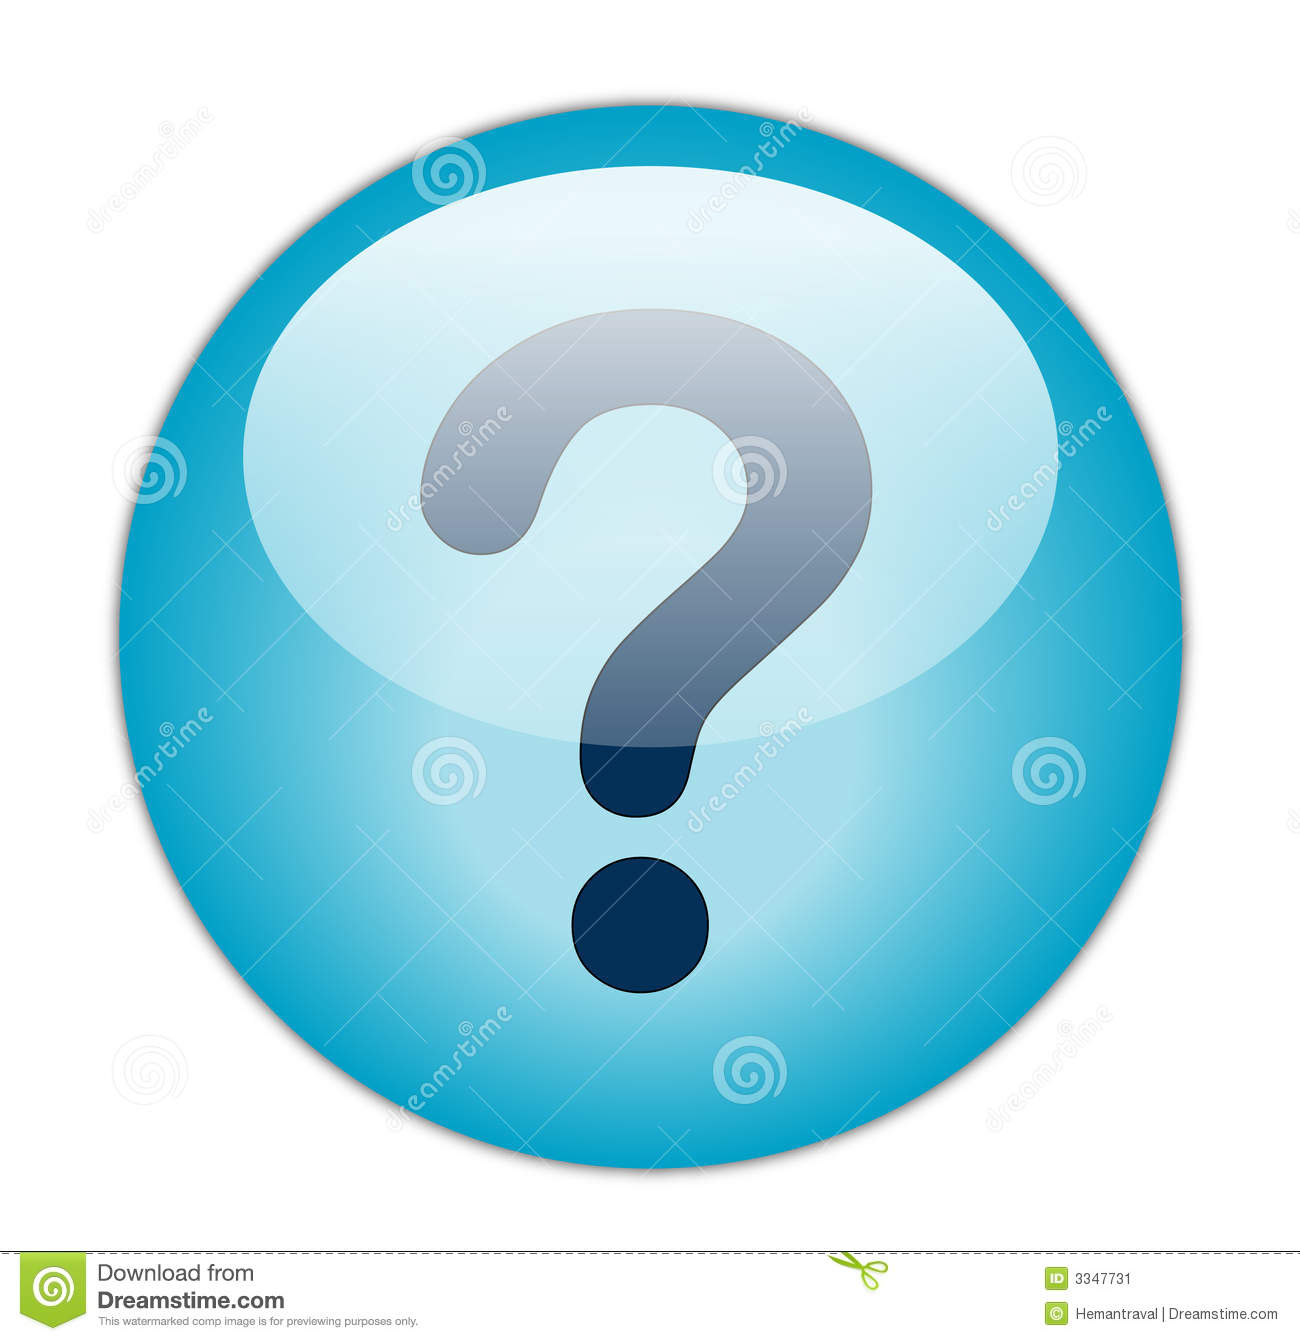 question stock image question mark stock image image 3347731 8685